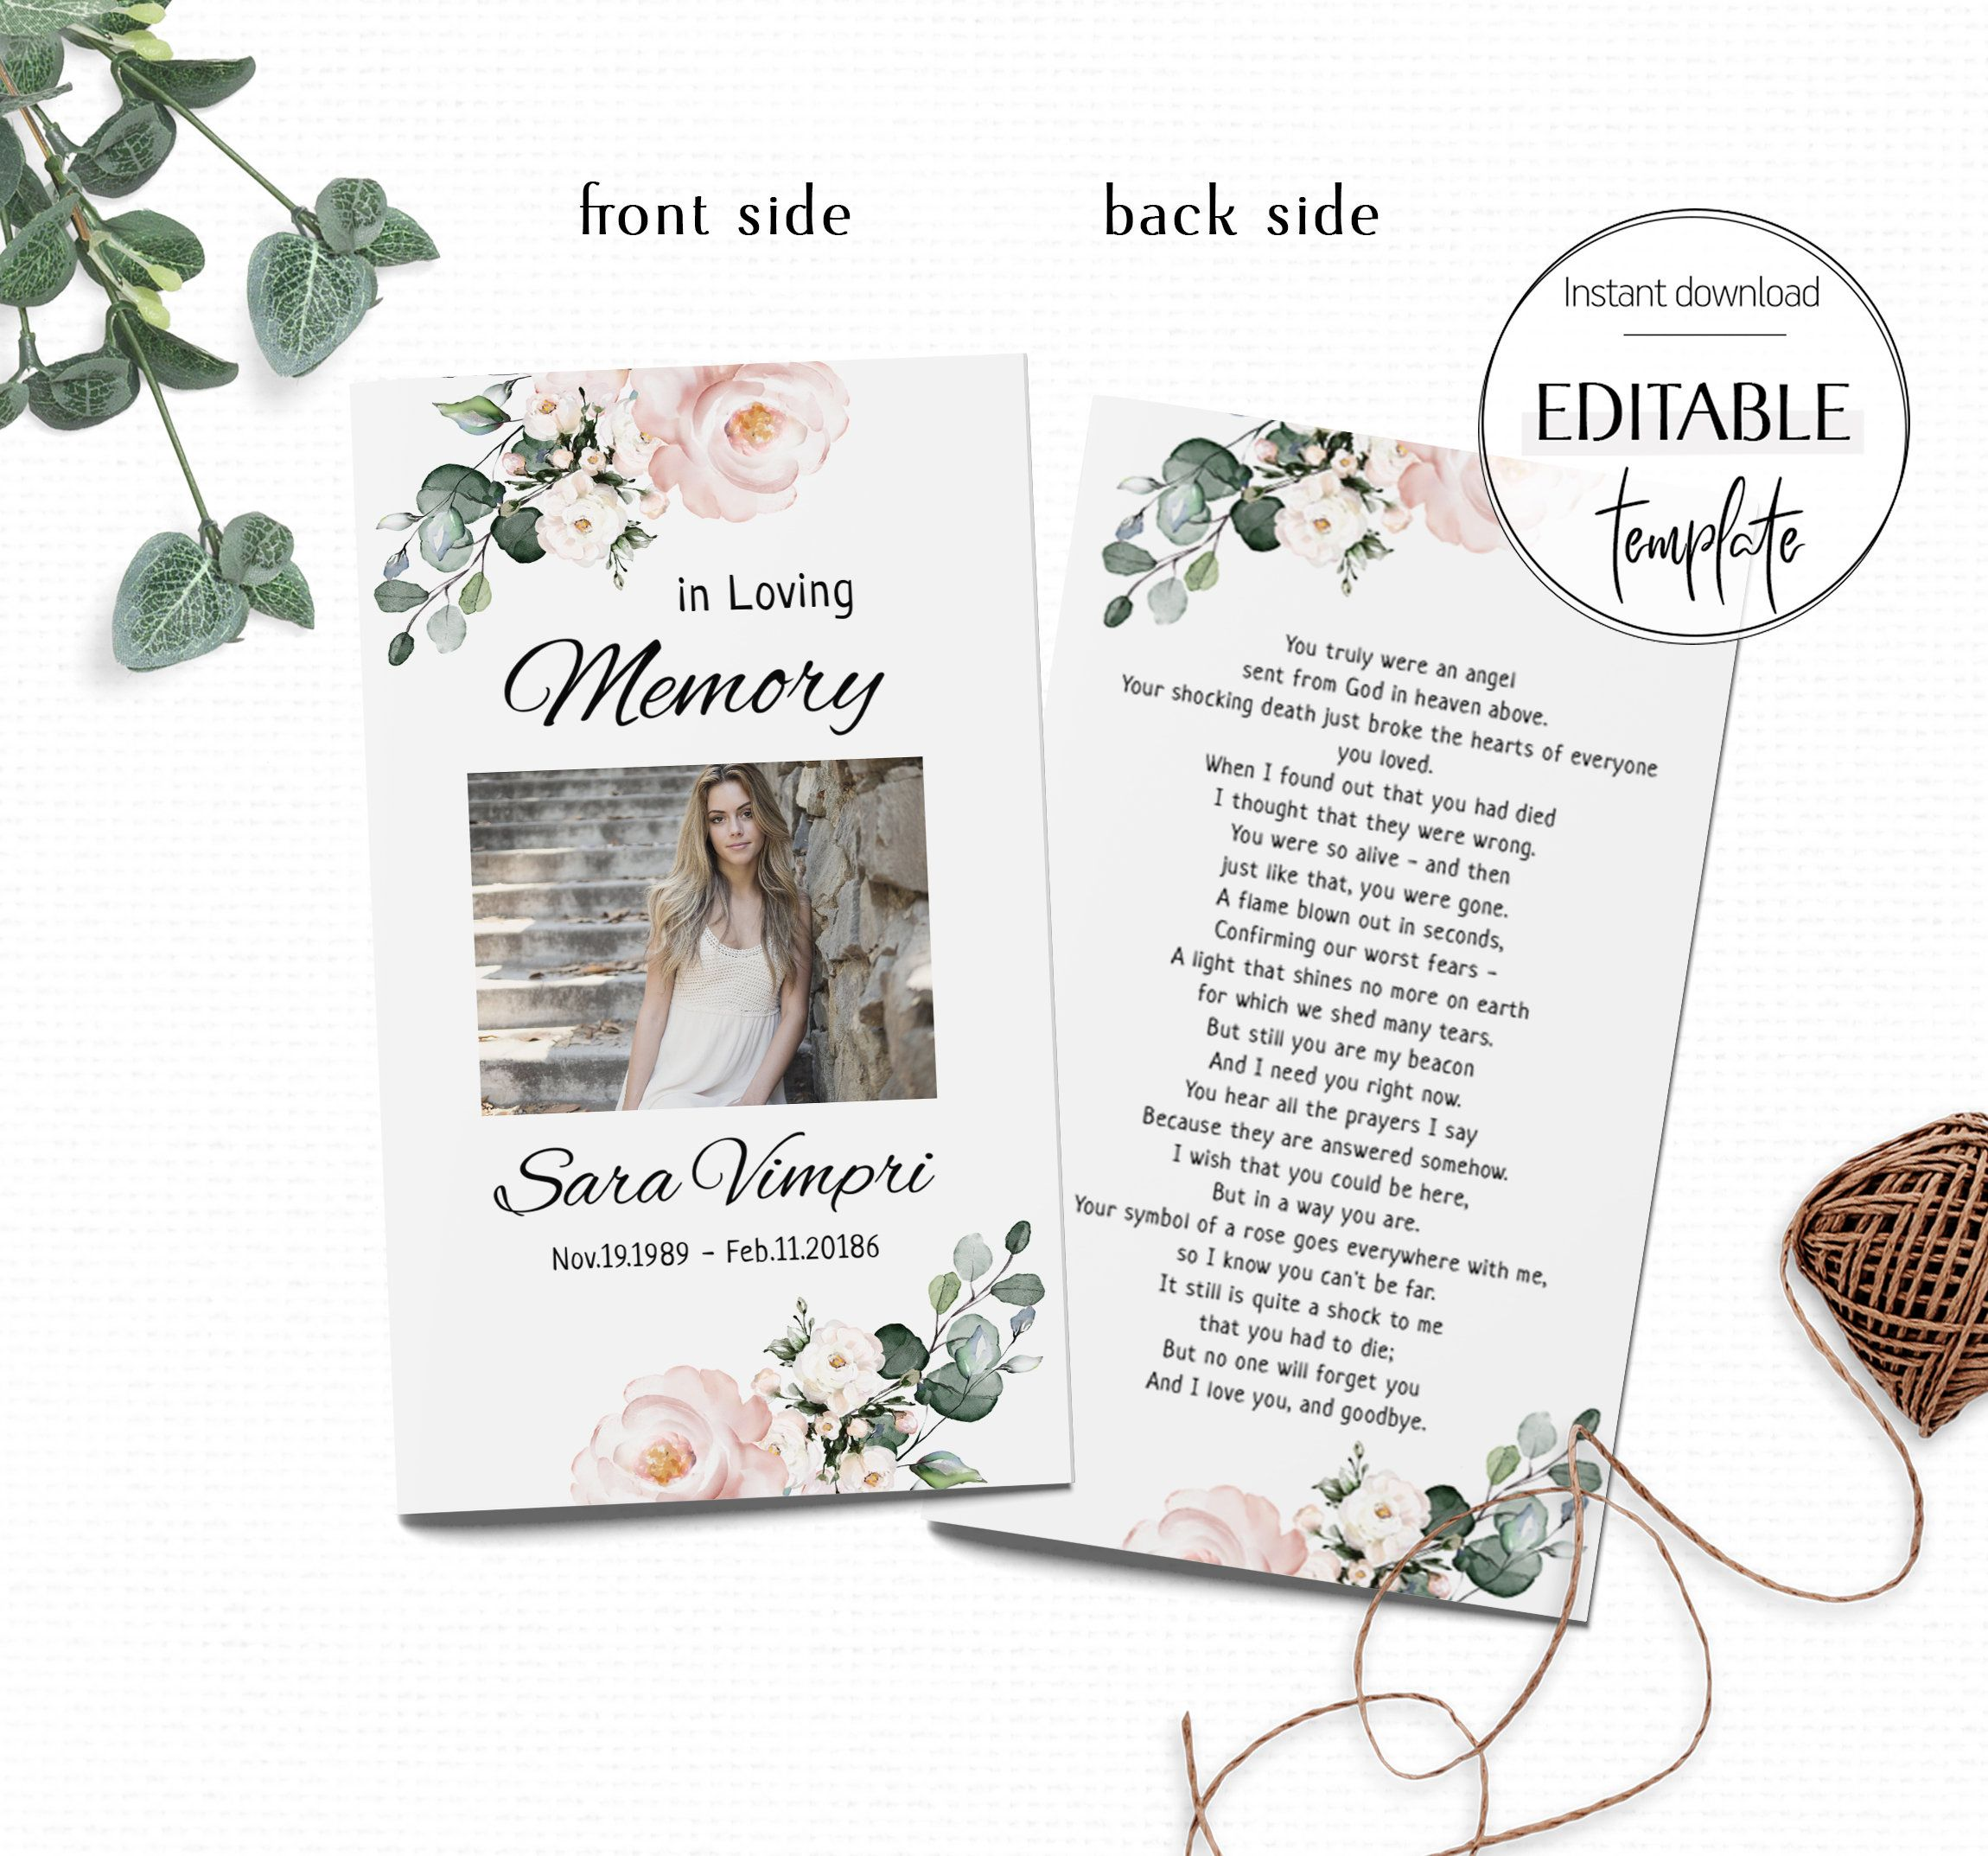 Editable Funeral Prayer Card Template Celebration Of Life Etsy Memorial Cards For Funeral Prayer Cards Funeral Prayers